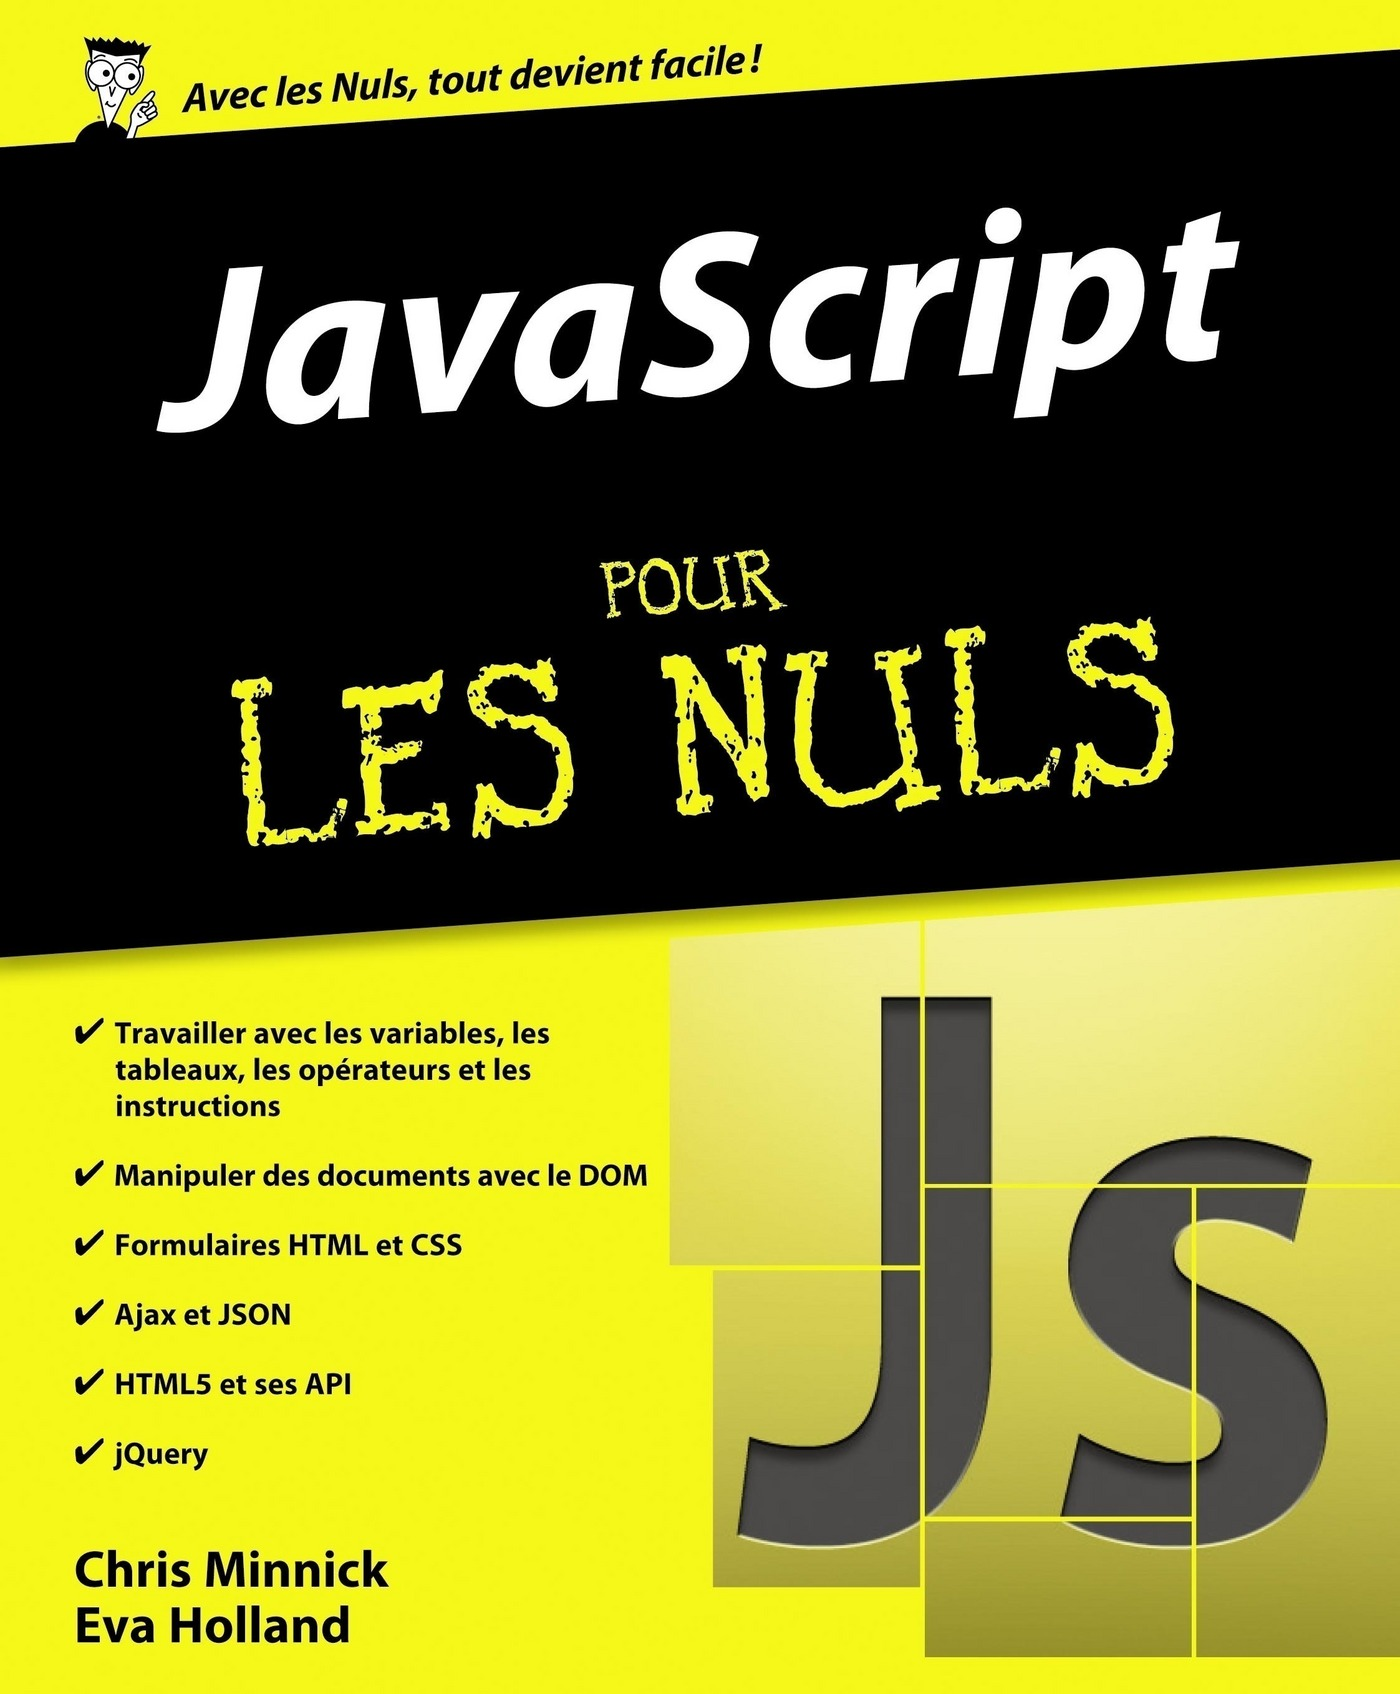 Vignette du livre JavaScript pour les nuls - Chris Minnick, Eva Holland